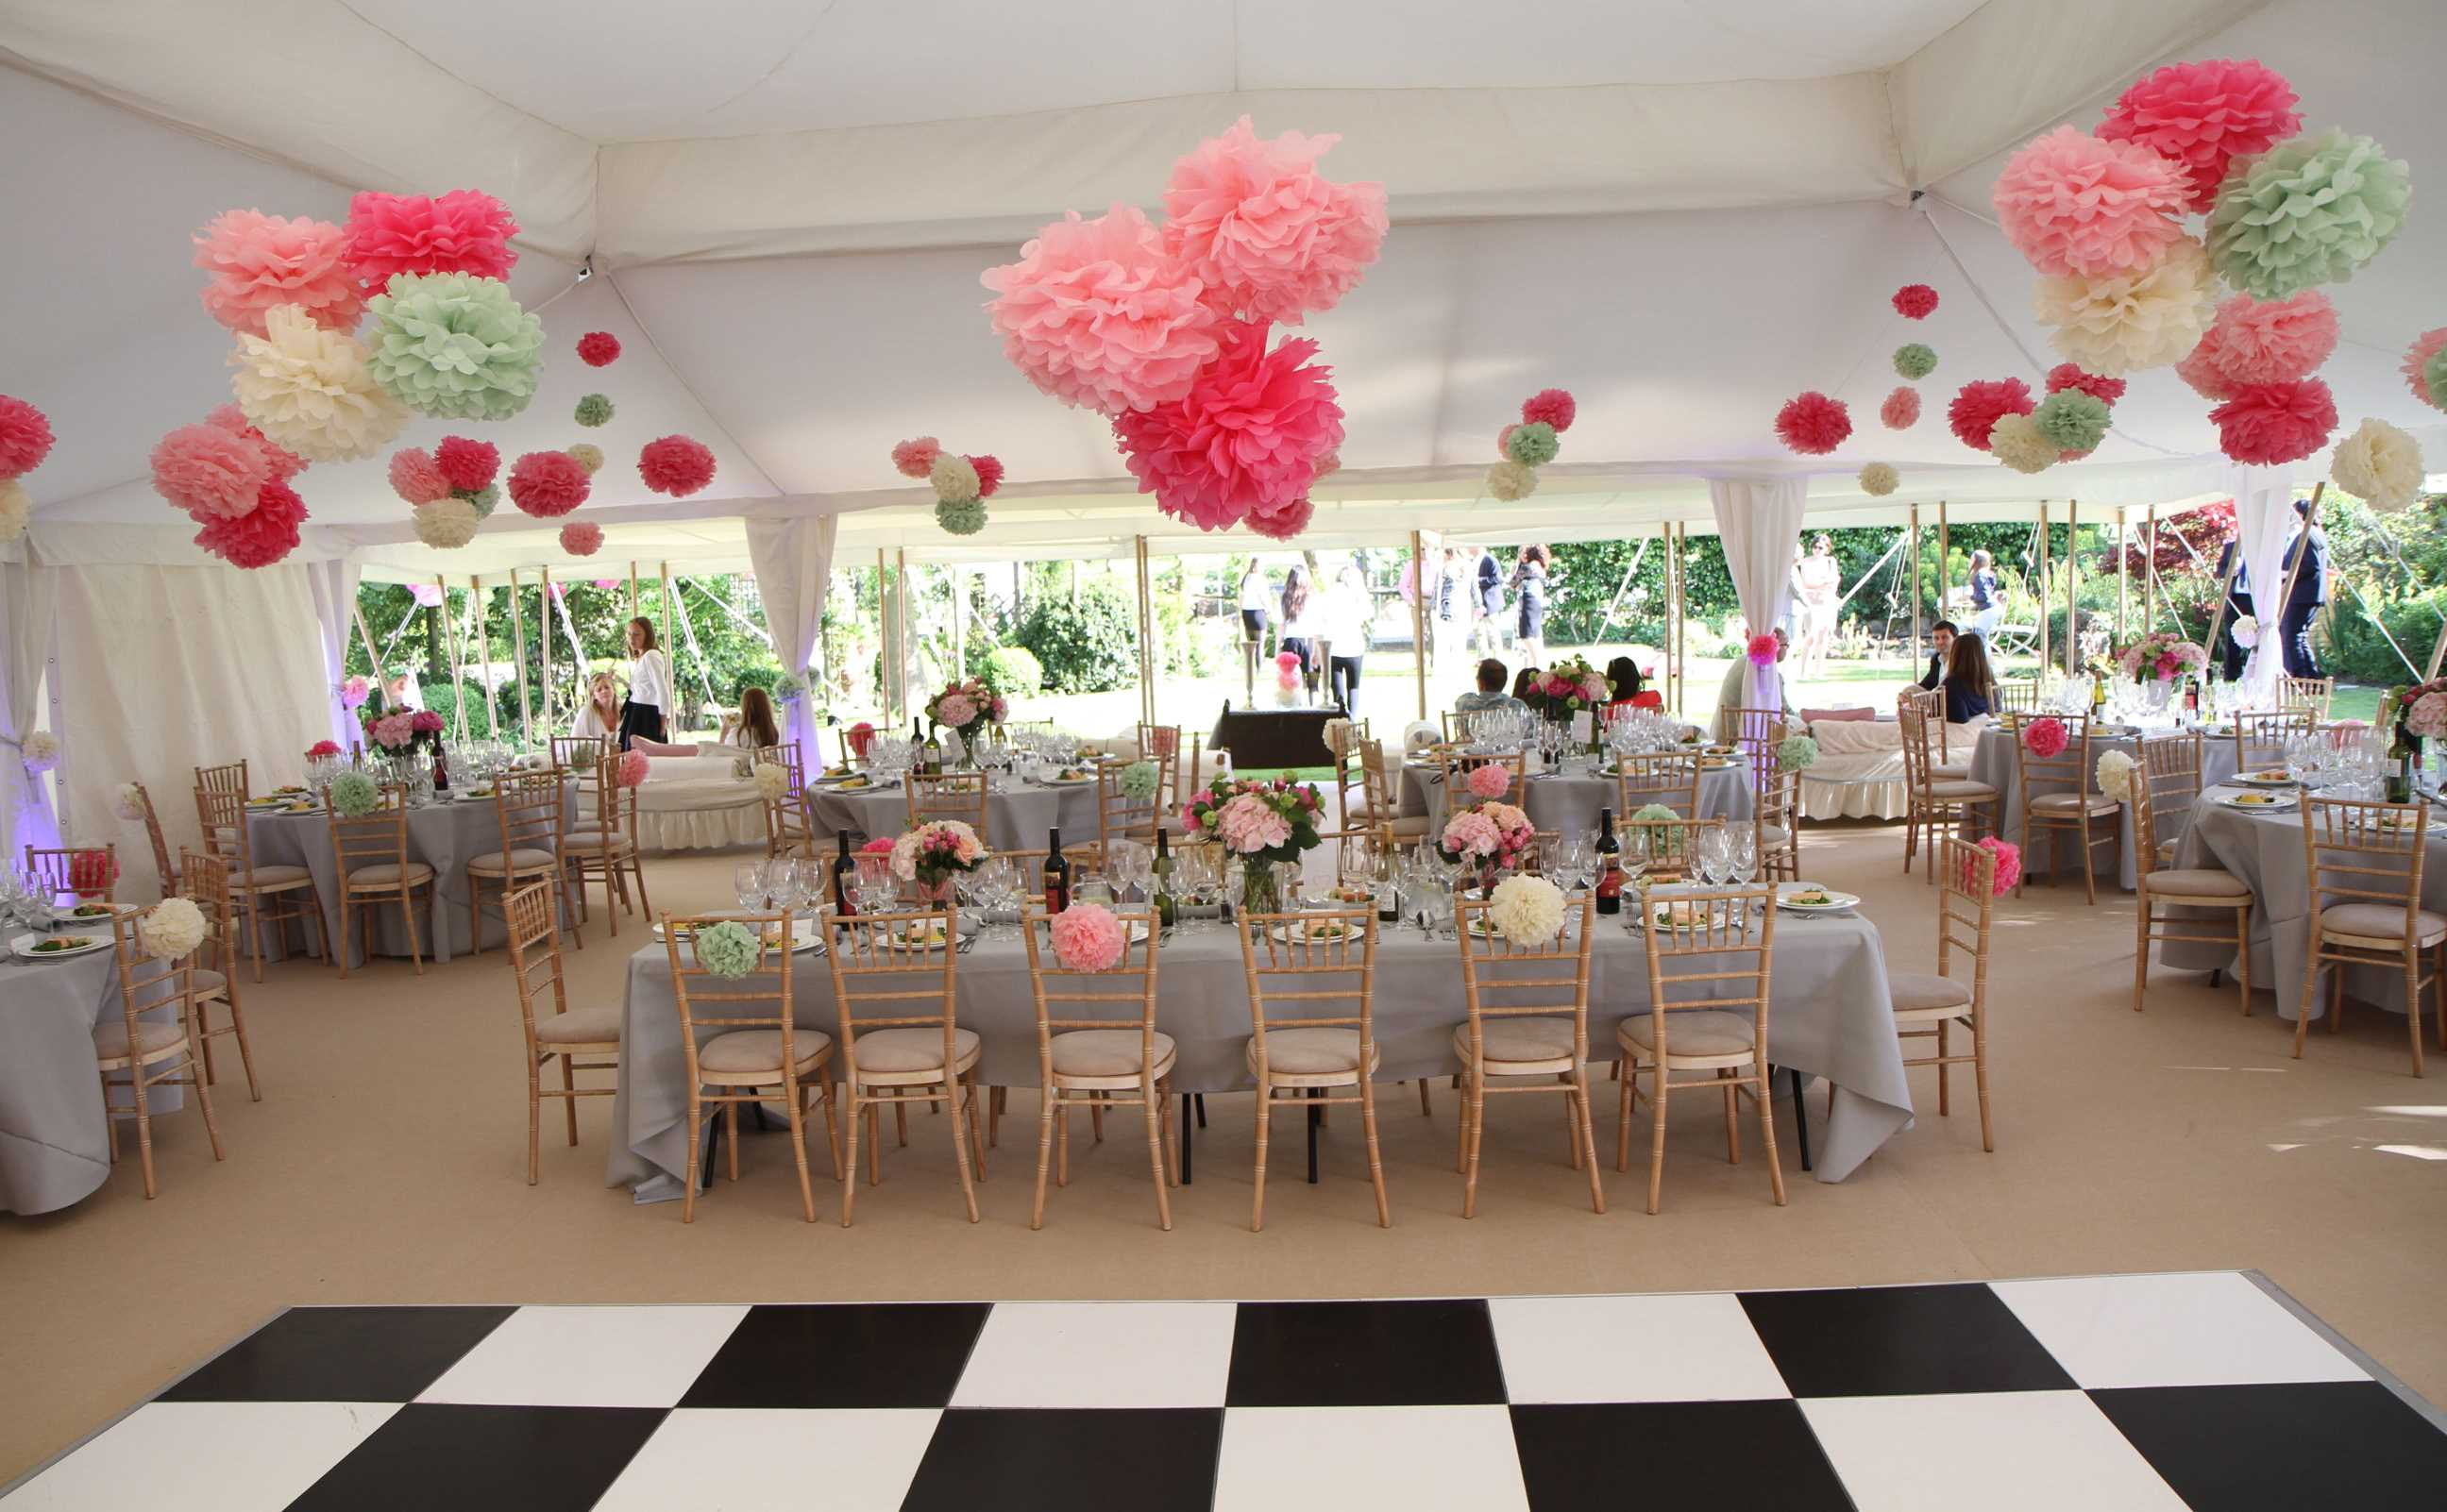 Choosing The Right Furniture To Suit Your Venue